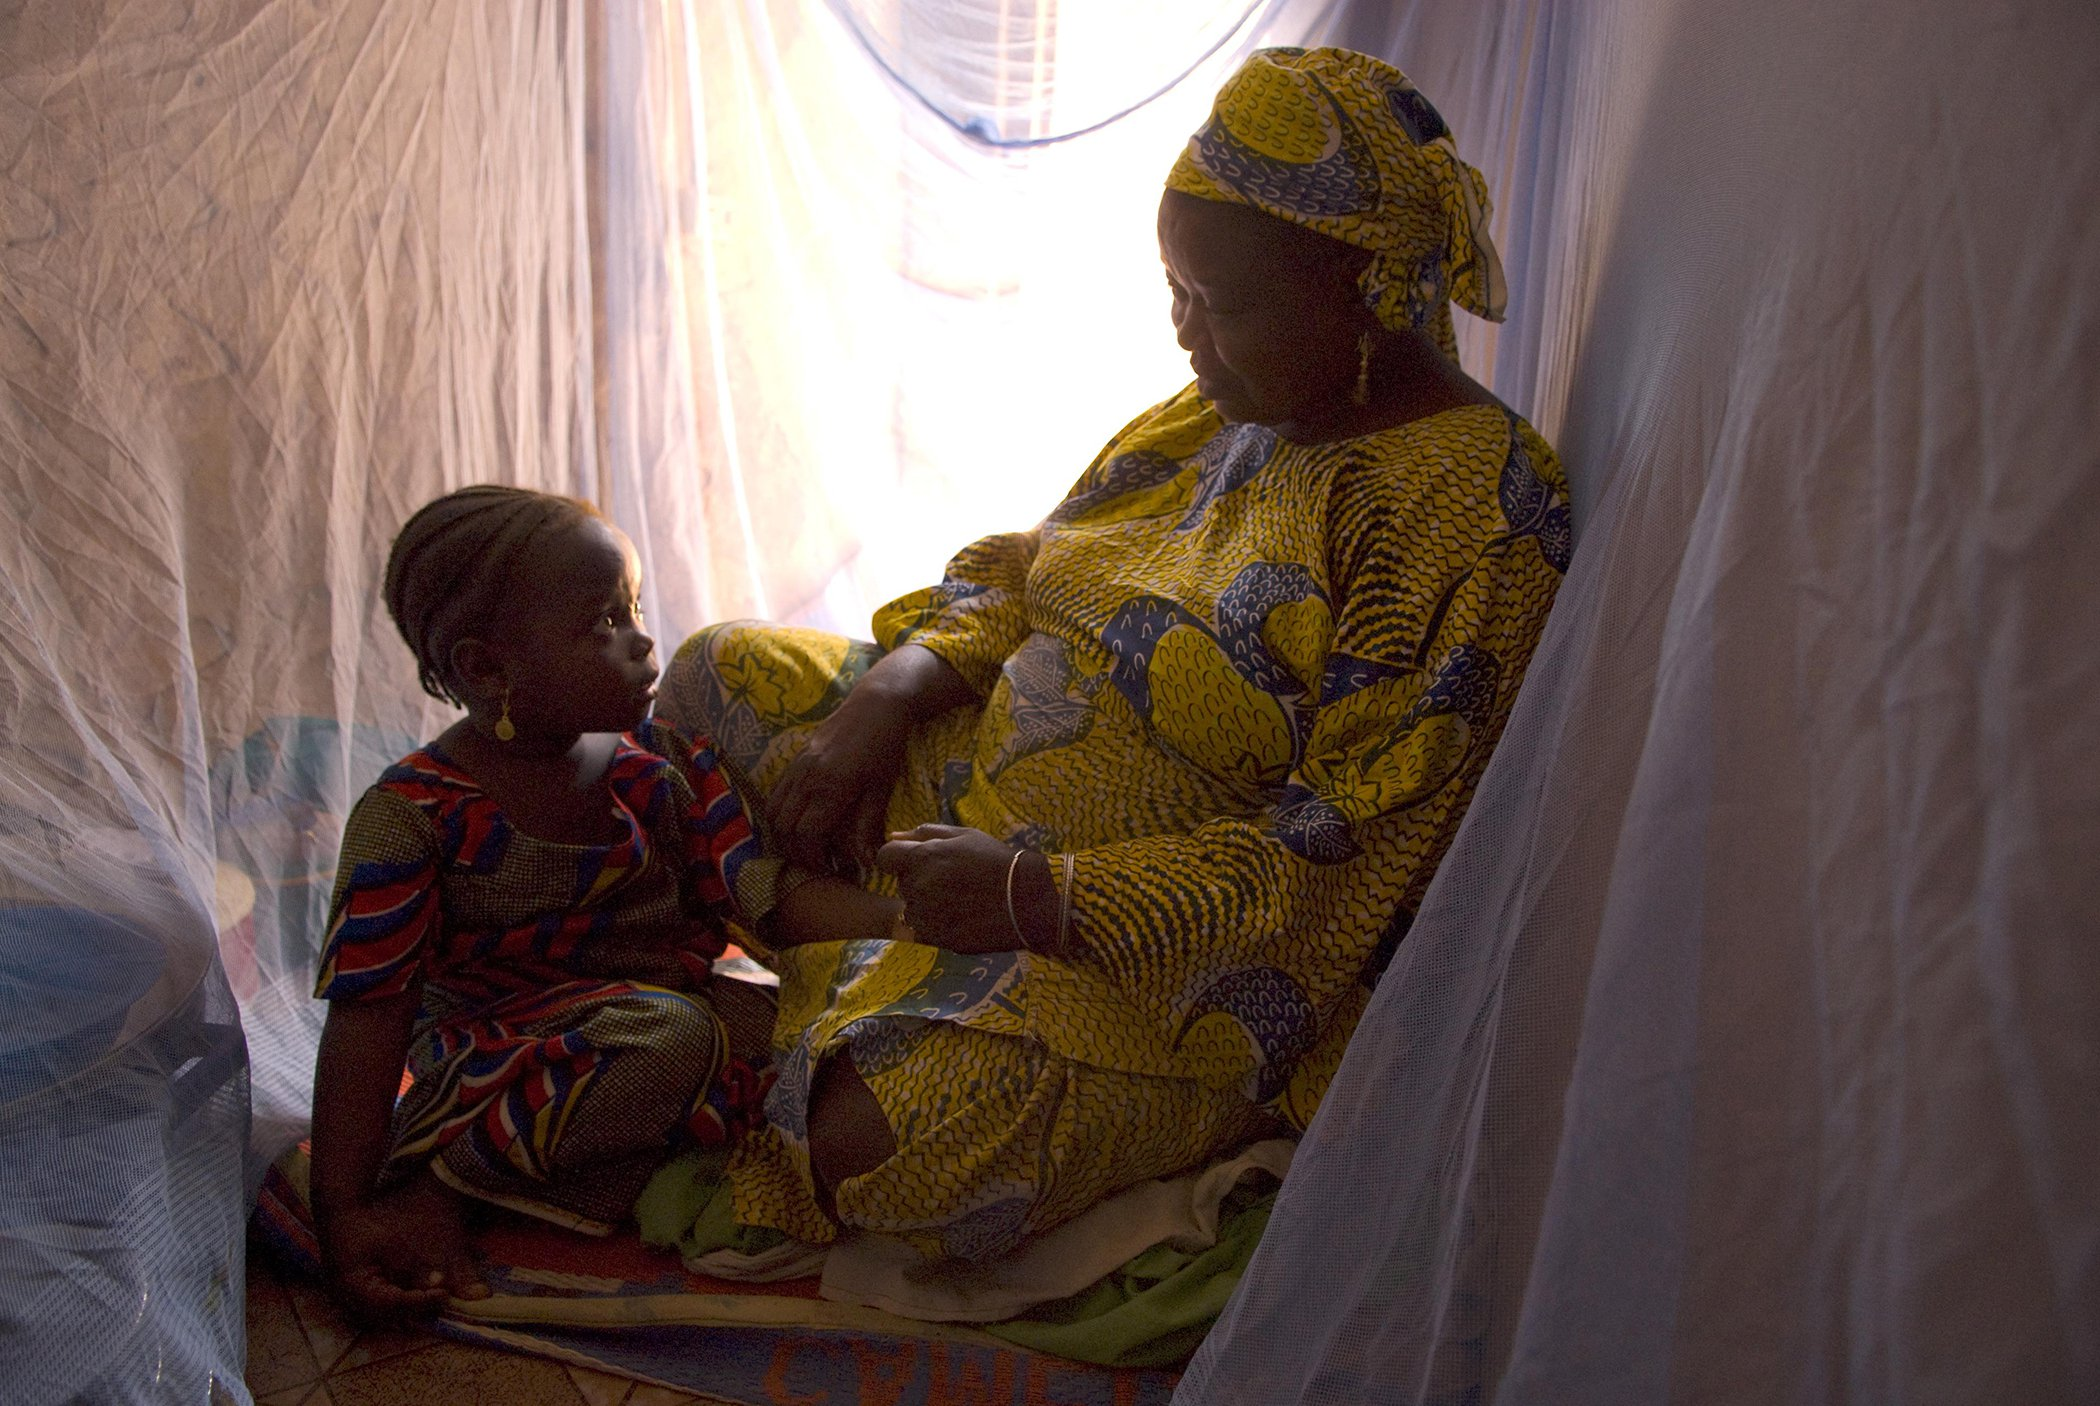 Nigeria-Malaria-World-Bank-Photo.jpg